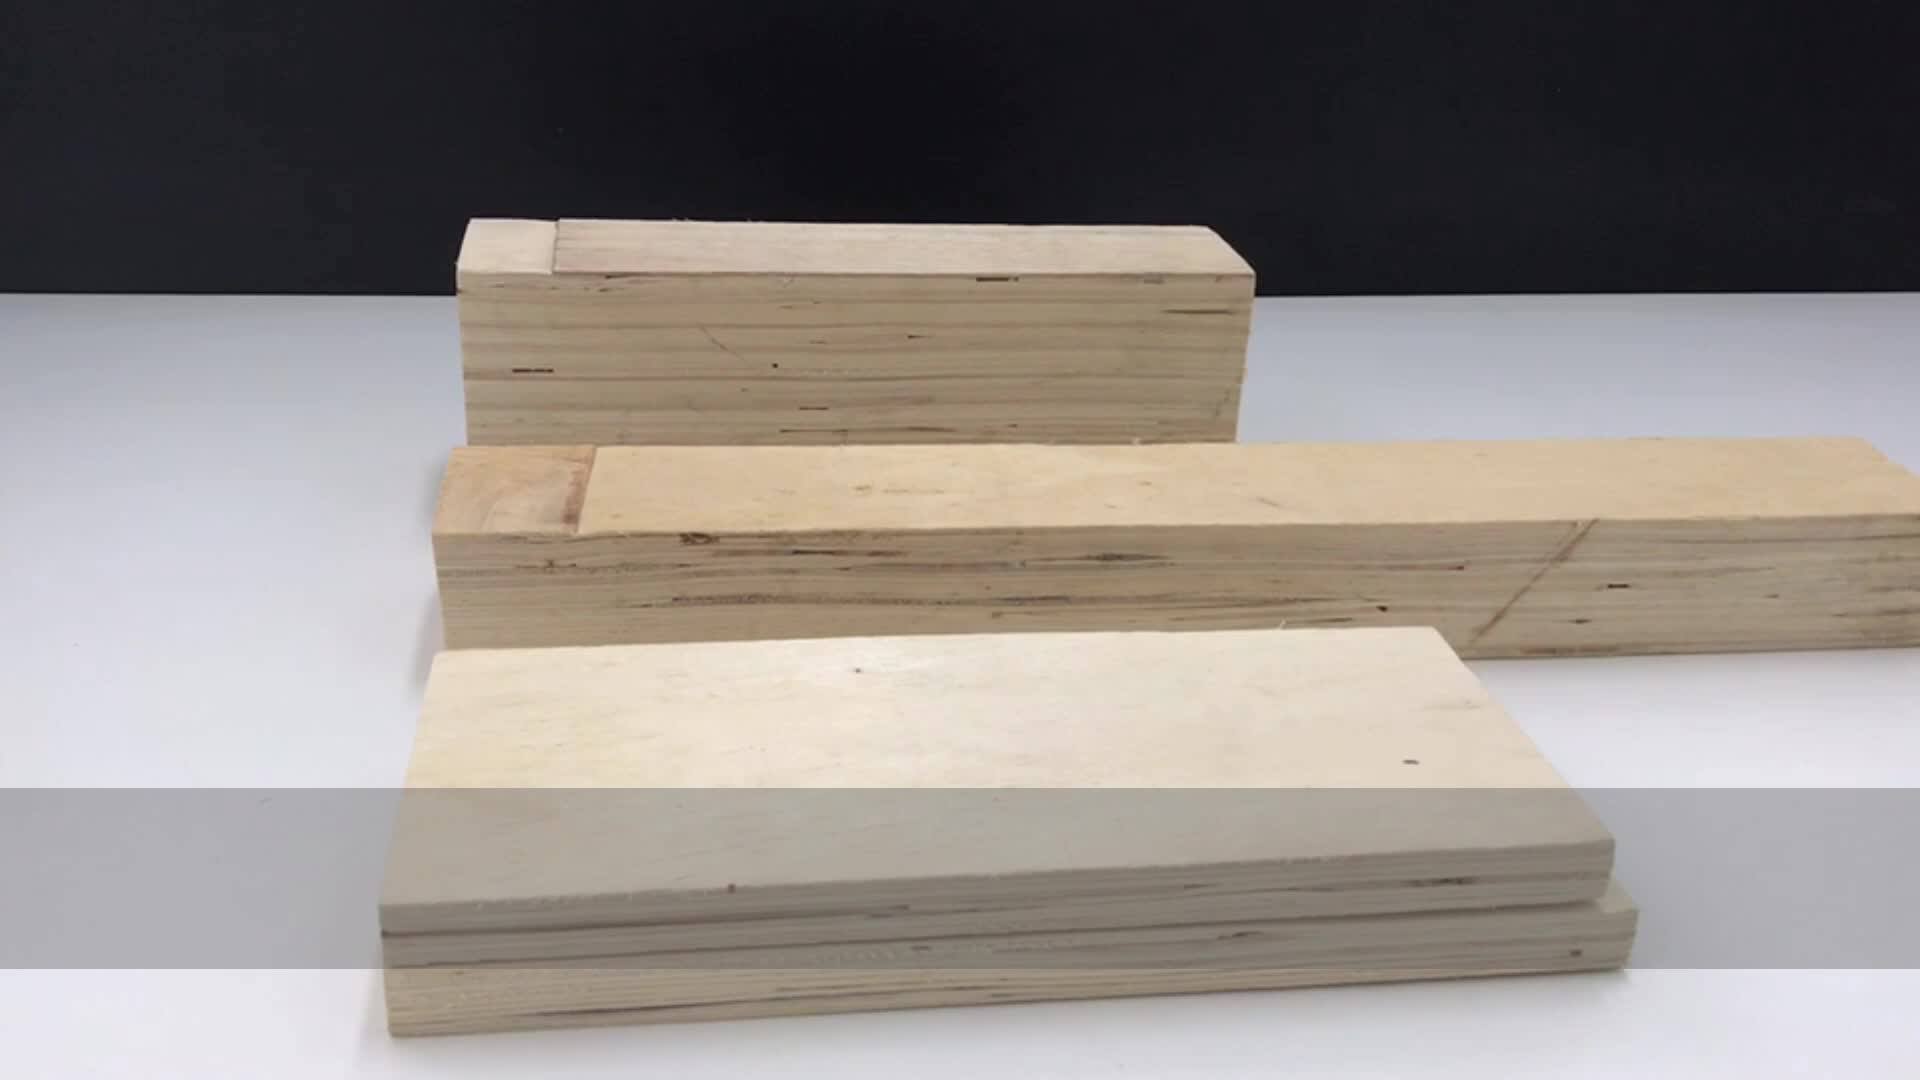 export to vietnam malaysia packing lvl plywood timber factory supplier manufacturer